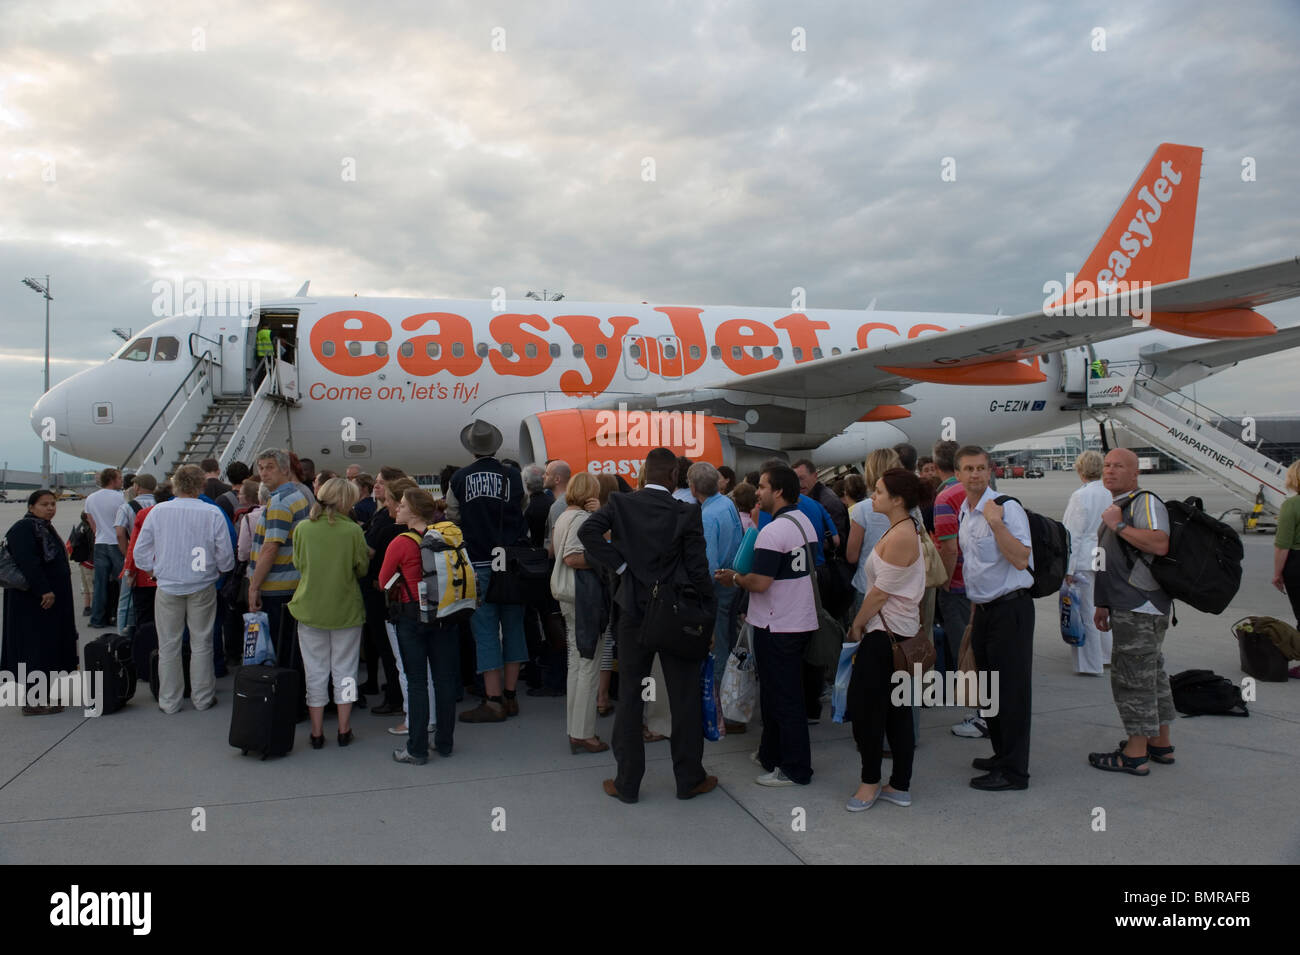 Airline passengers boarding a plane of discount airline Easyjet at Munich airport Germany - Stock Image